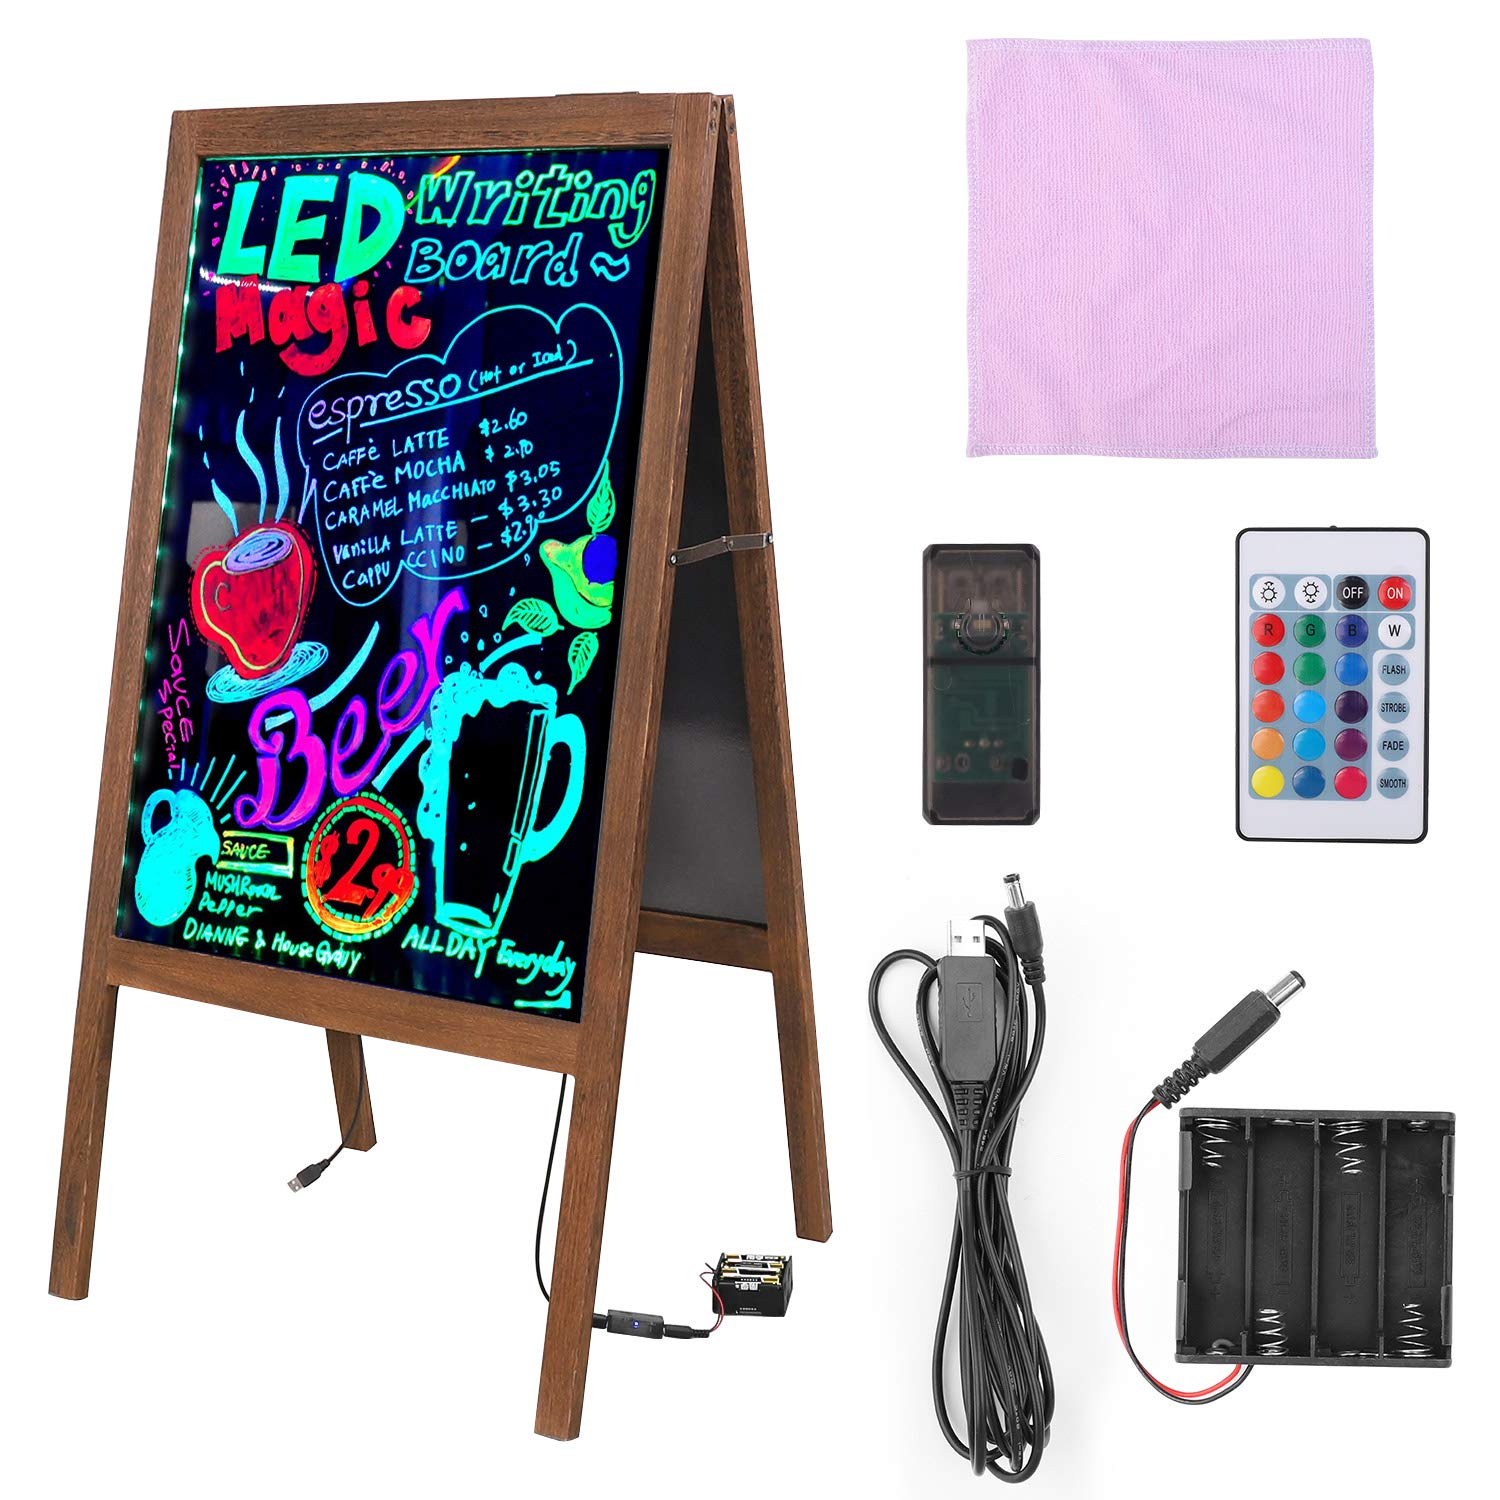 LUVODI LED Message Writing Board, 39.4'' x 20.5'' Double Sided Illuminated Erasable Neon Effect Glass Surface Restaurant Menu Sign with Stand Kid DIY Painting Chalkboard 4 Flashing Mode for Bar, Kitchen by LUVODI